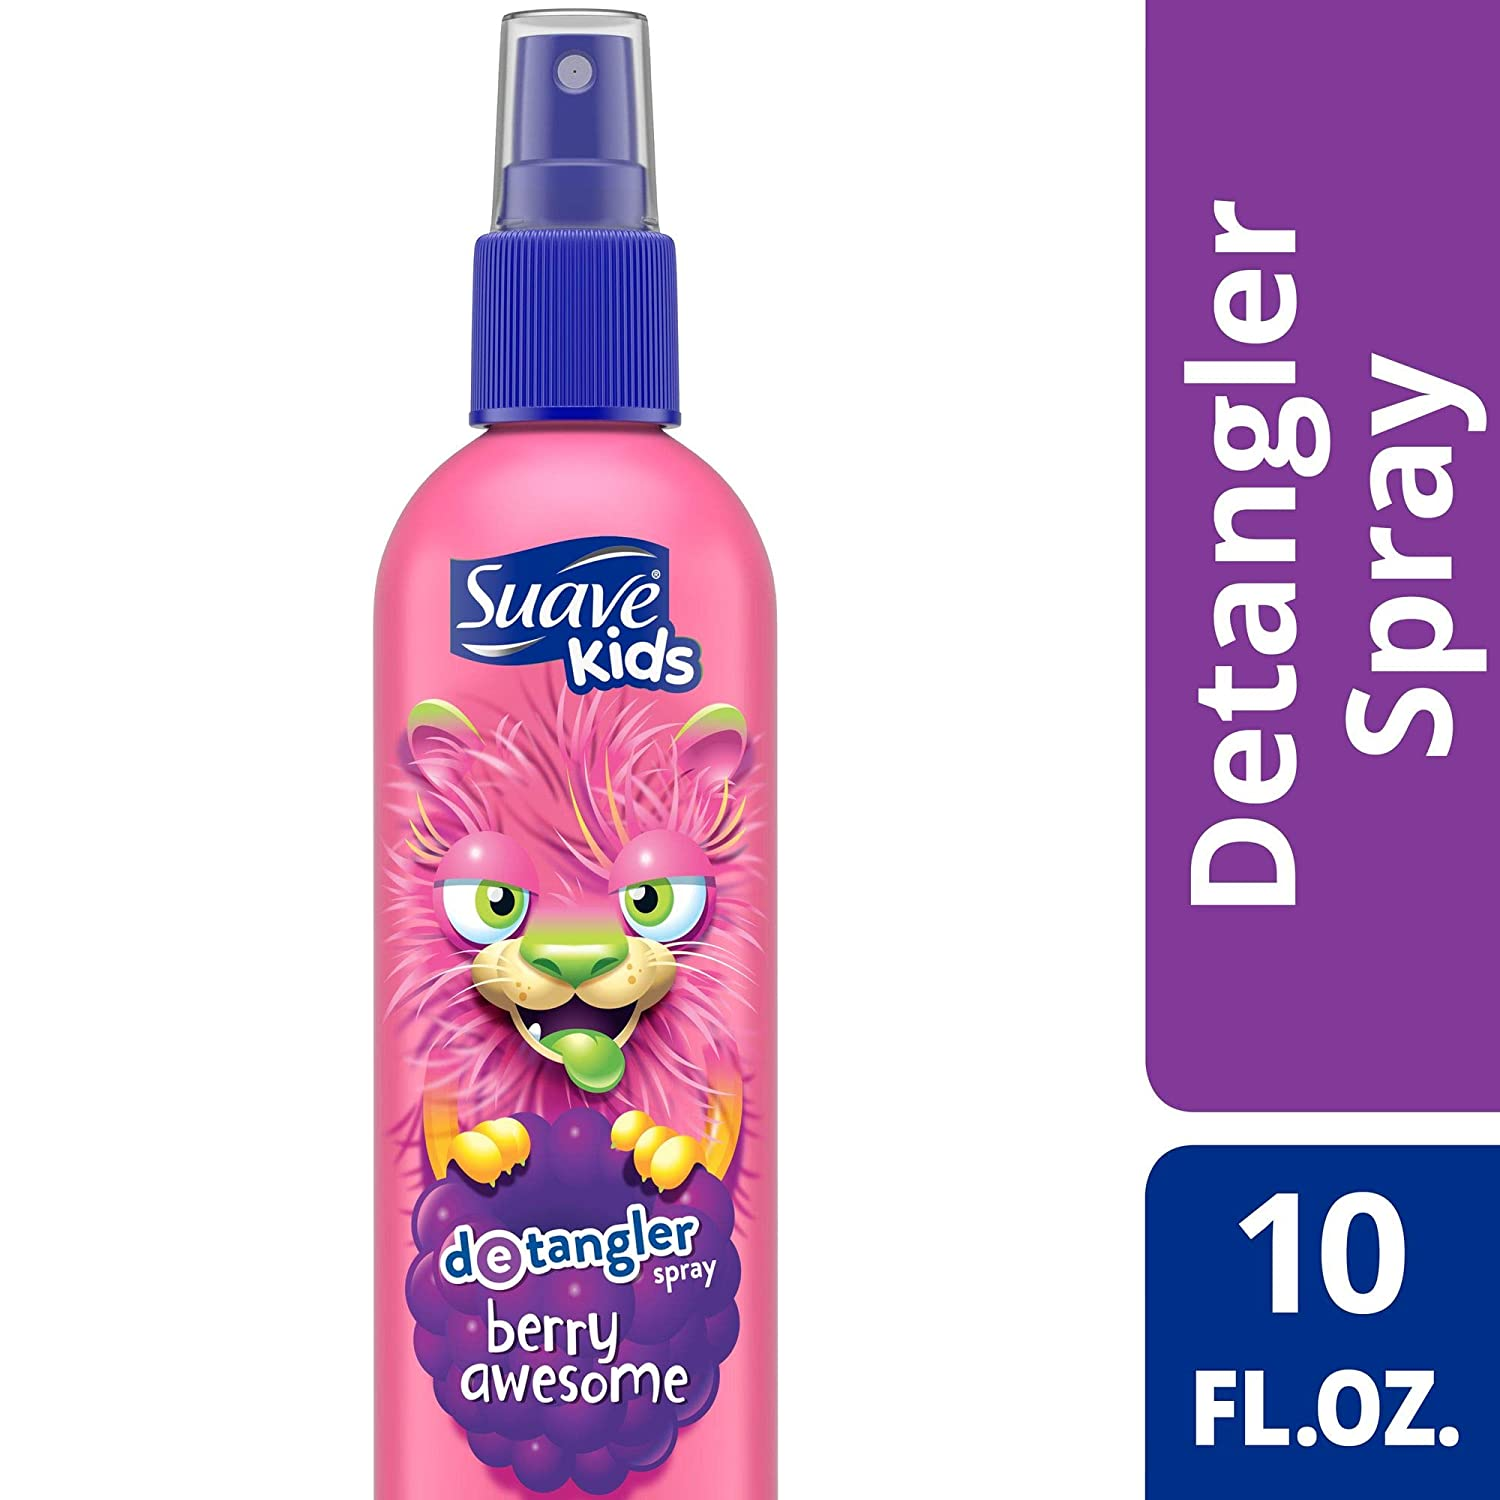 Suave Kids Detangler Spray Berry Awesome